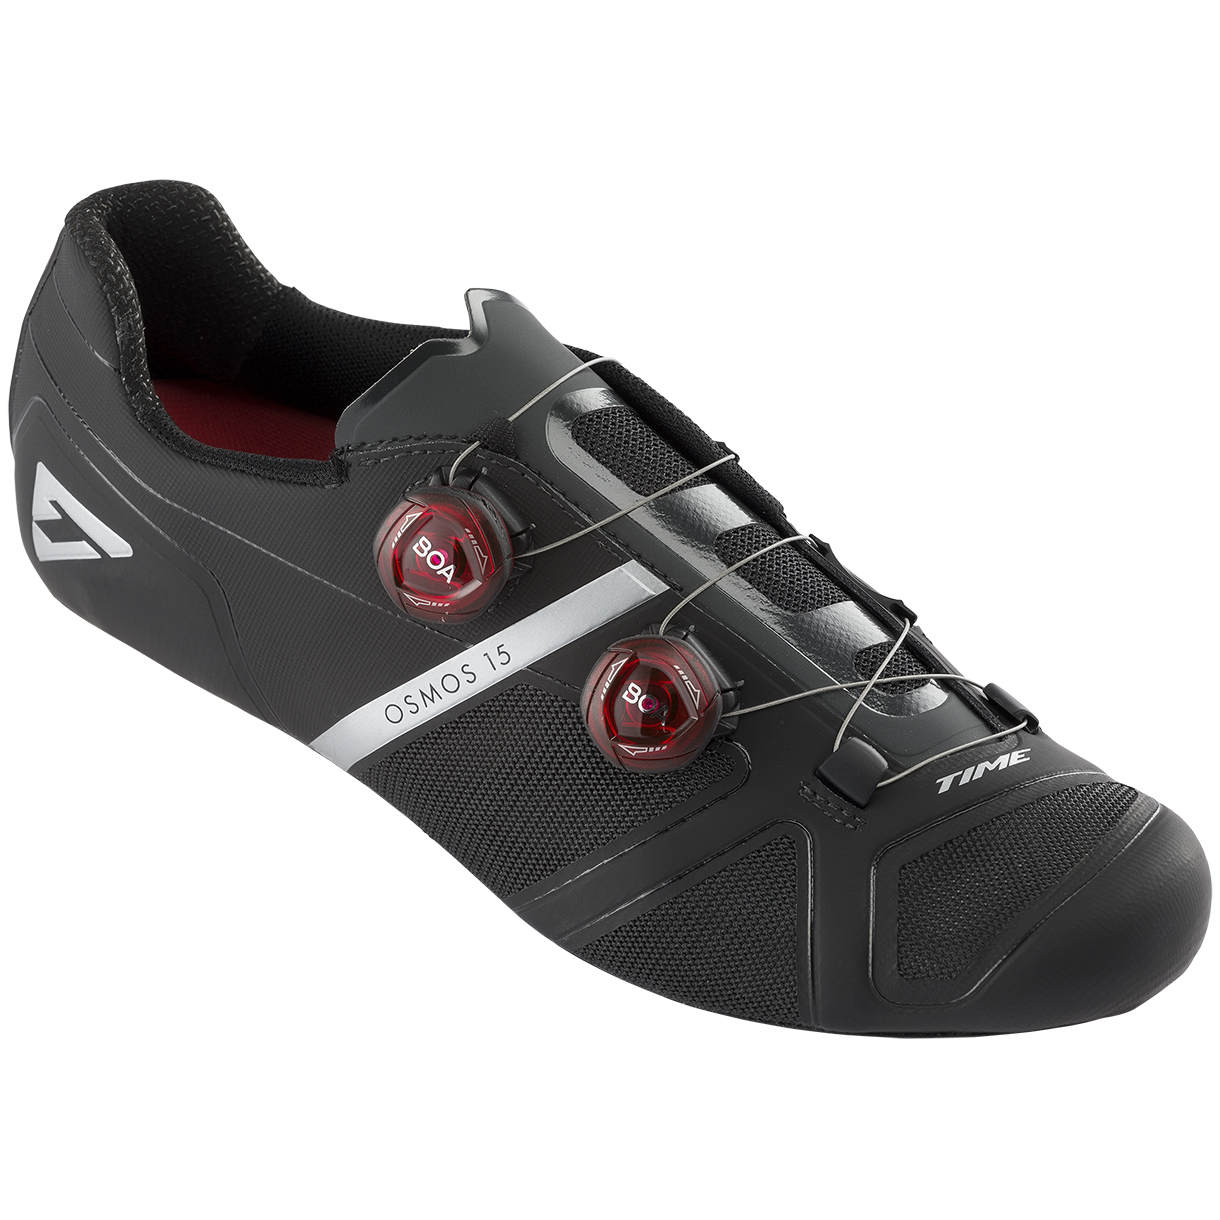 Time Osmos 15 Road Cycling Shoes - 2019